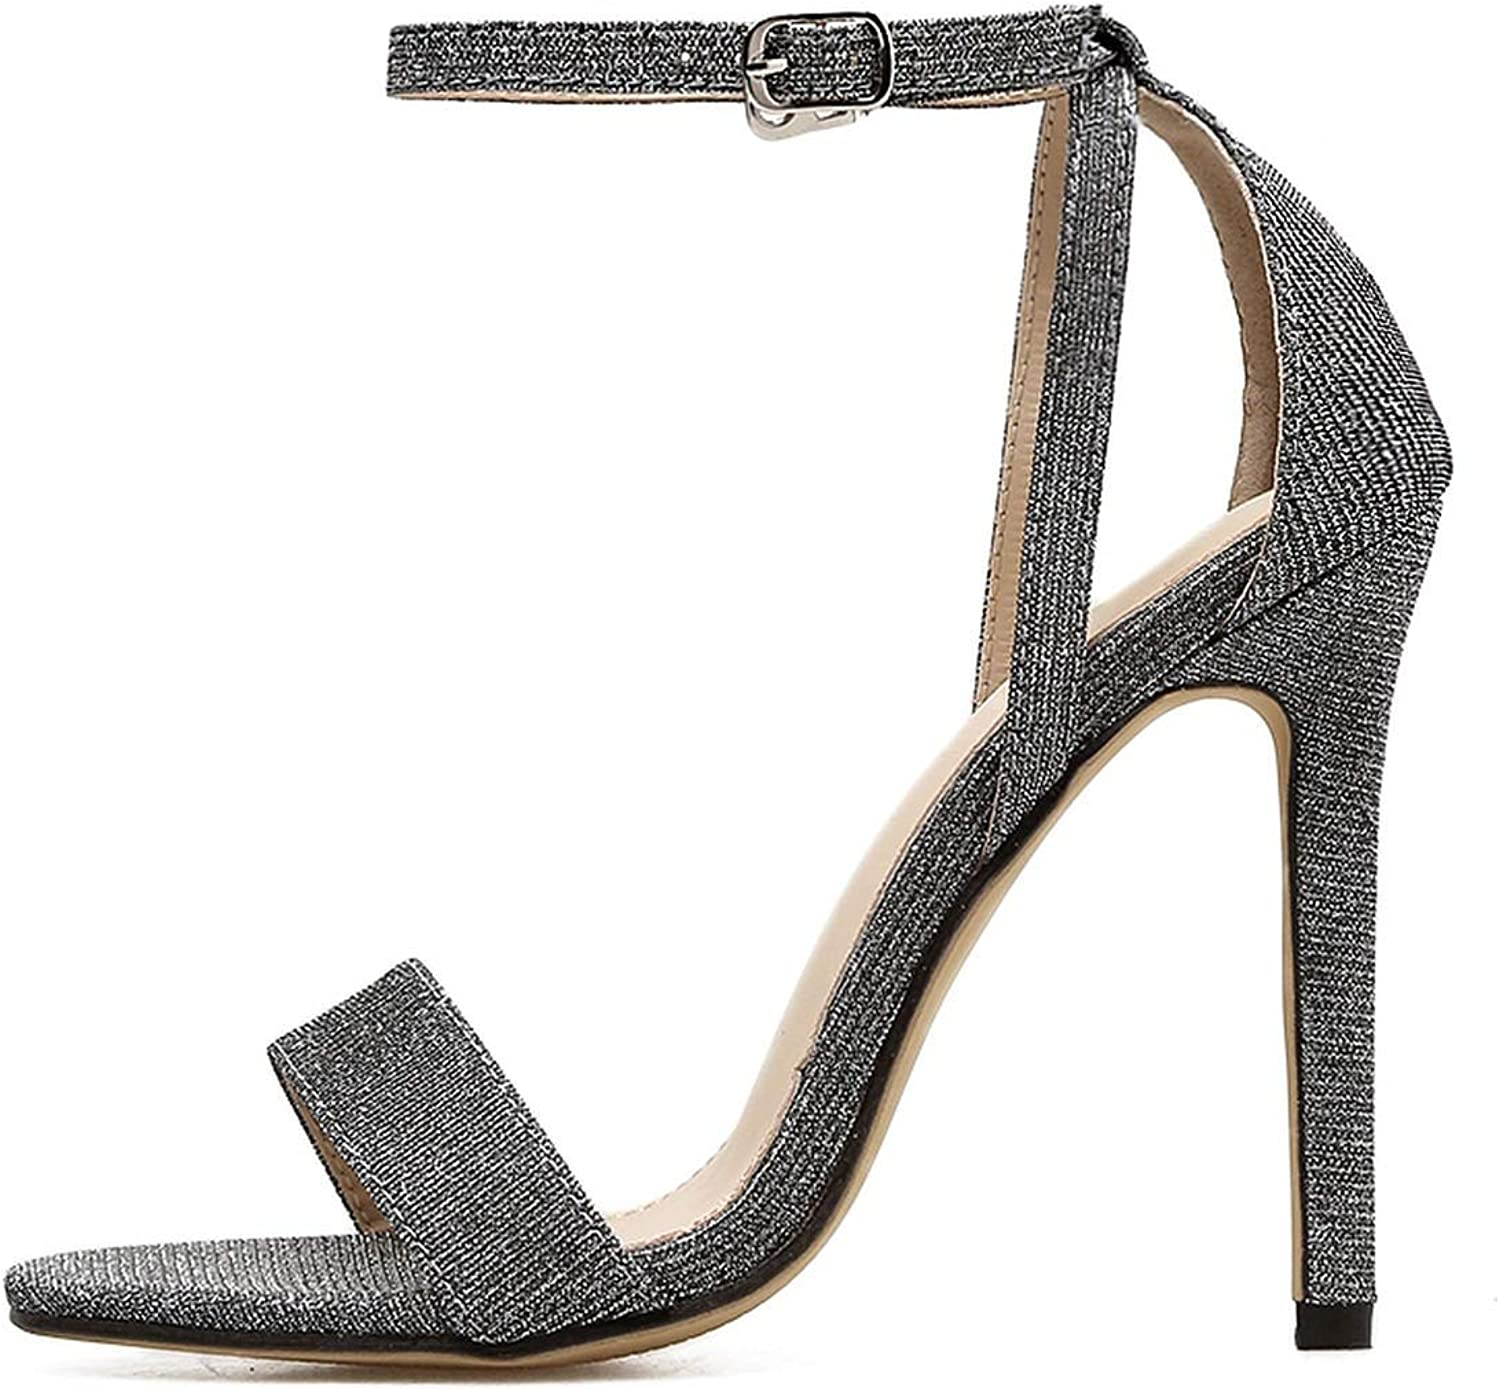 Sexy Women Silver Wedding shoes Open Toe Stiletto High Heels shoes Woman Sandals Female